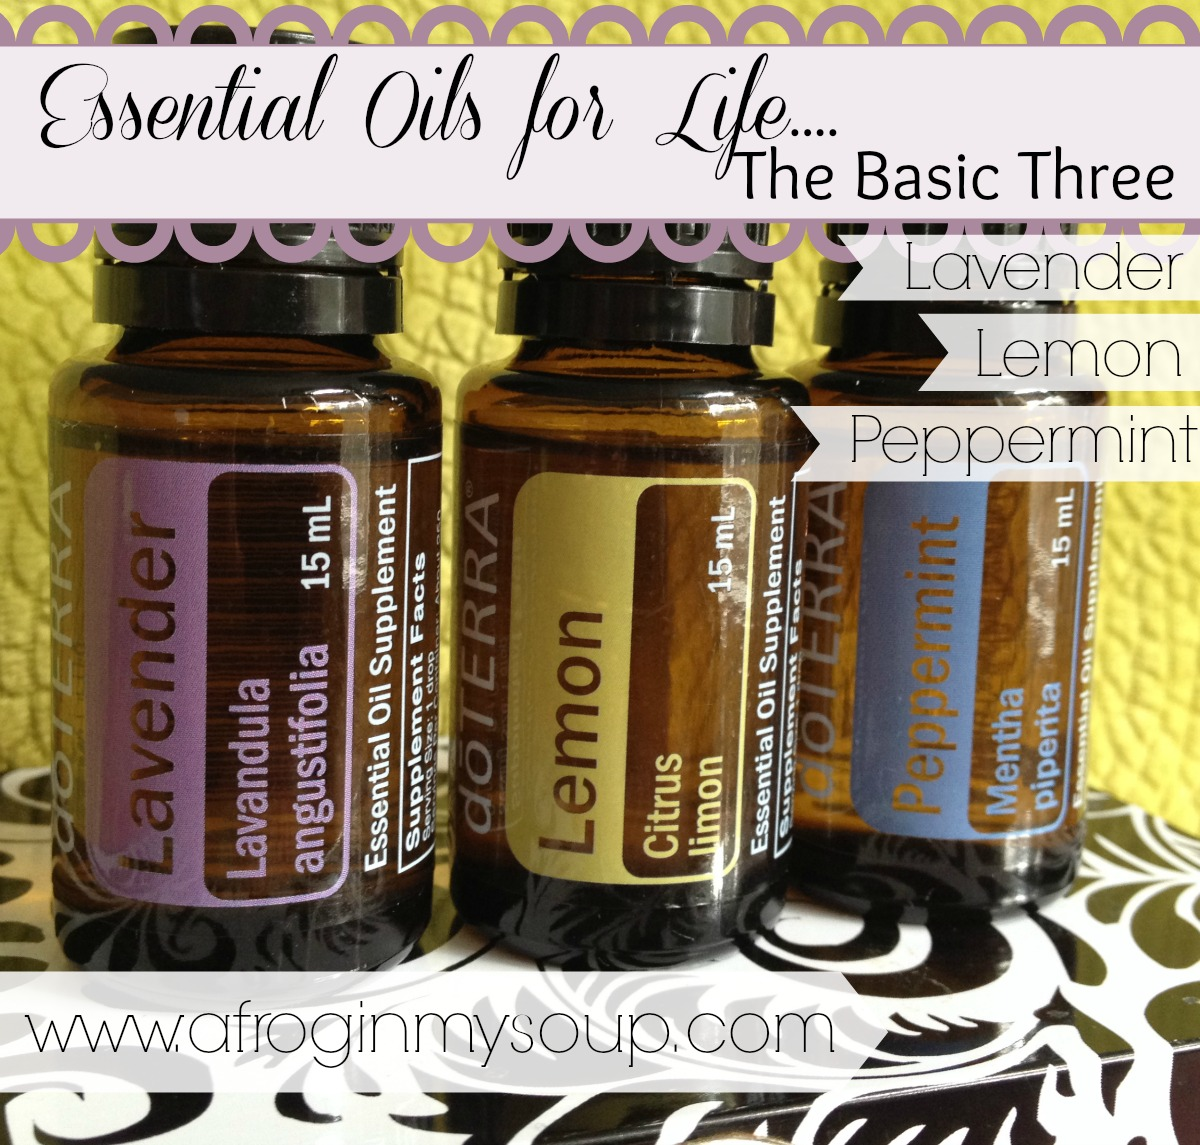 Essential Oils for Life: the Basic Three